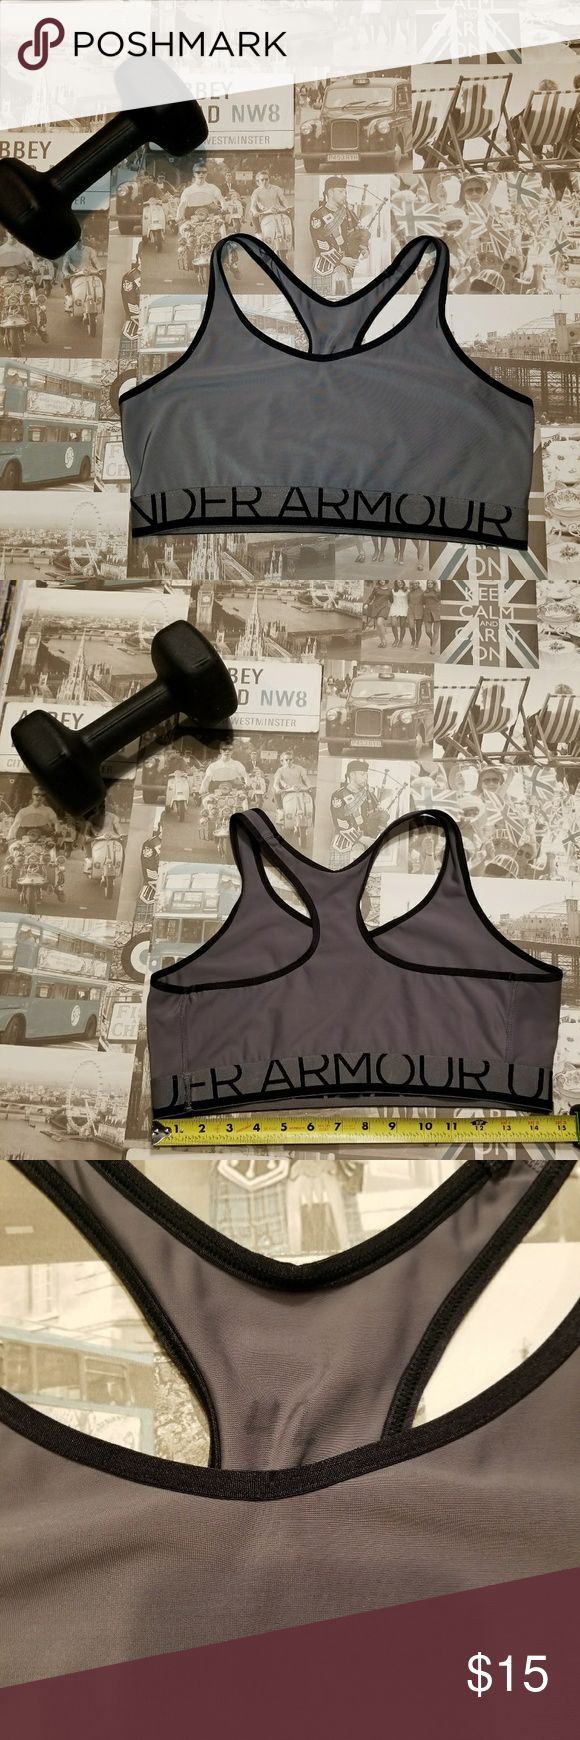 Under Armour Black and Grey Sports Bra Size Large Polyester with elastic band. In good shape but tags removed for comfort and #42 written lightly inside. Clean smoke and pet free home. Save big when you bundle! Under Armour Intimates & Sleepwear Bras